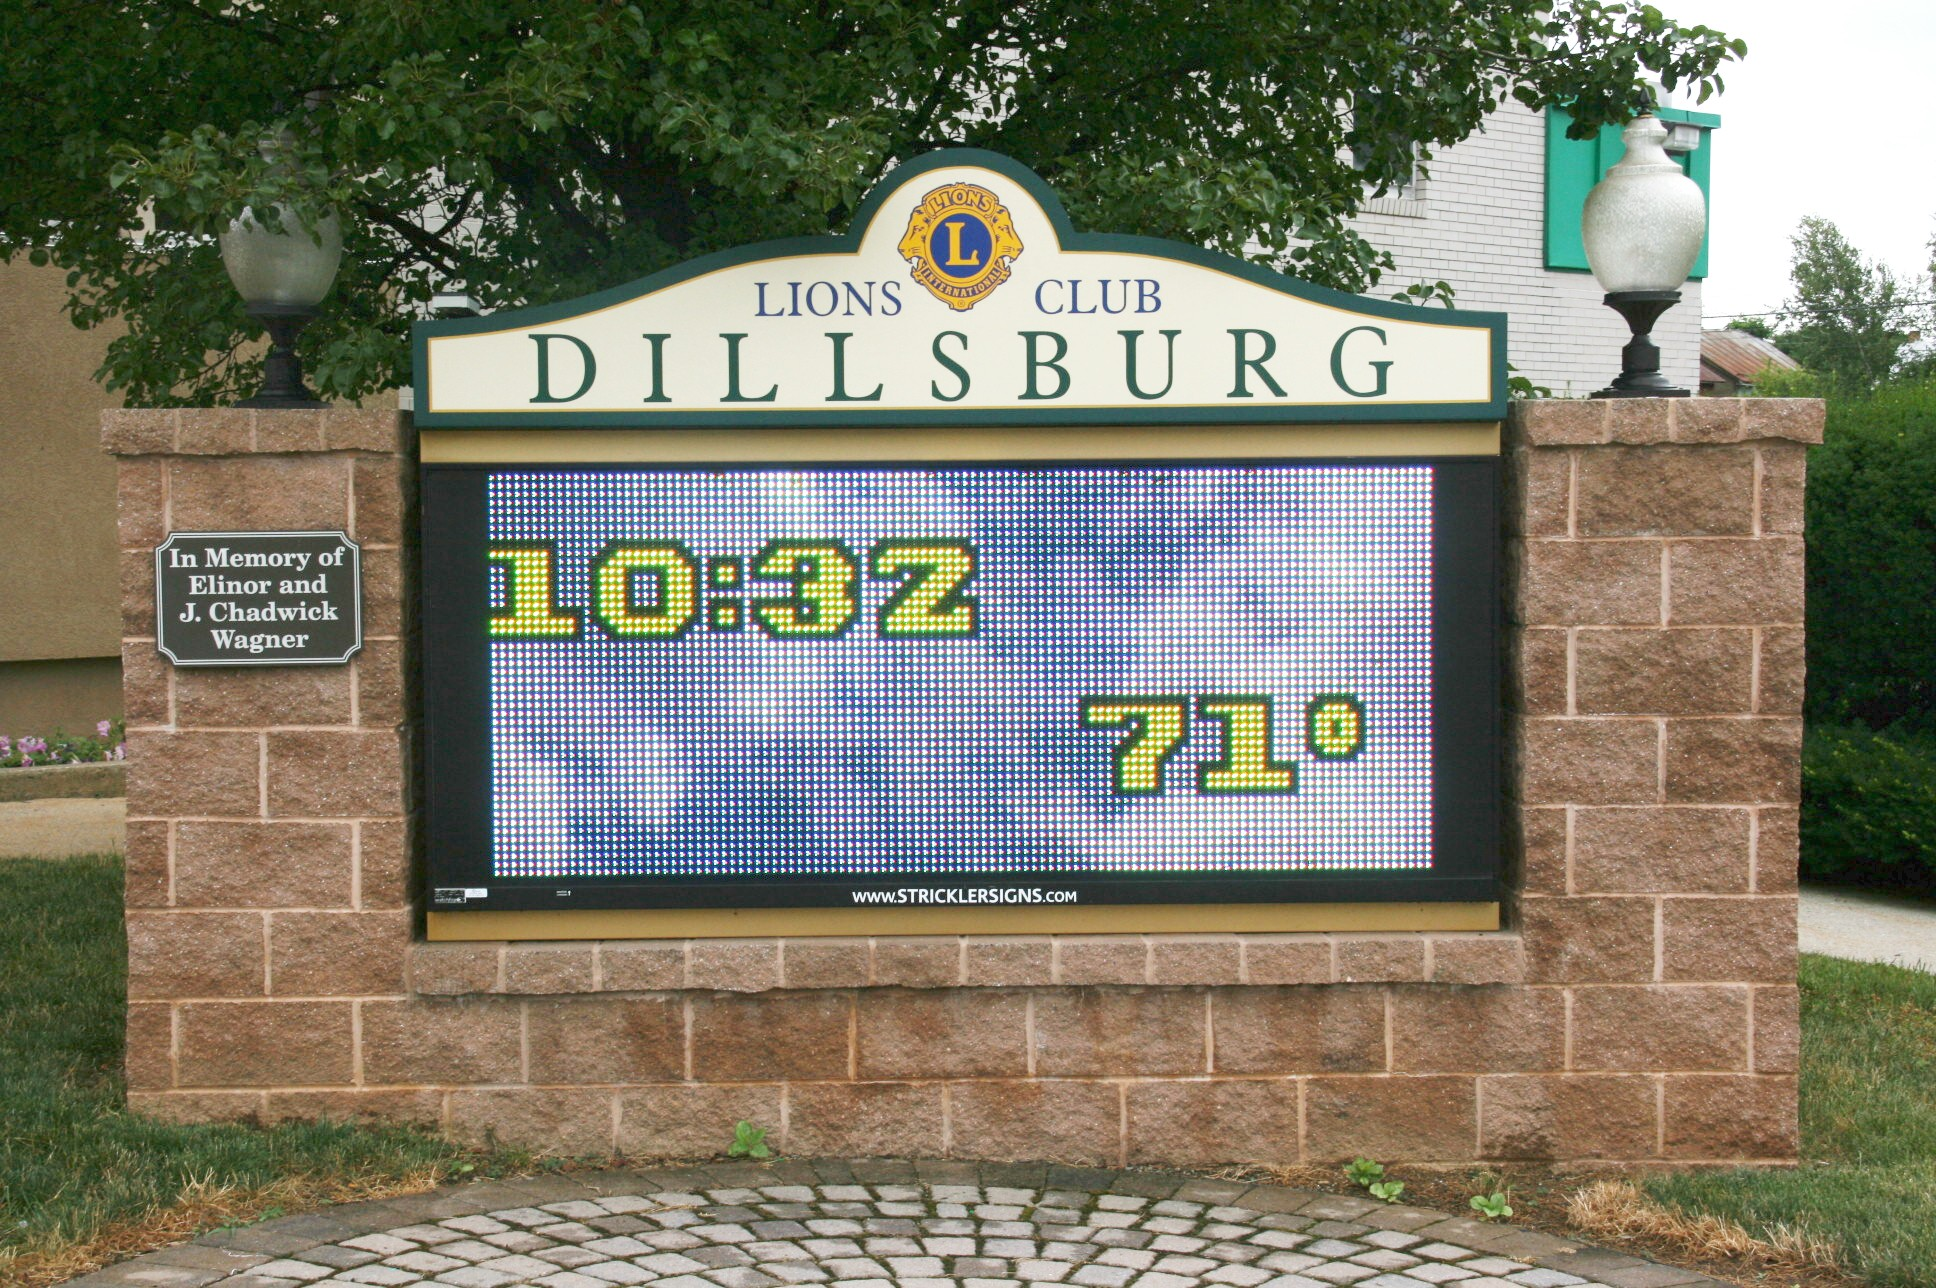 DILLSBURG COMMUNITY BULLETIN BOARD